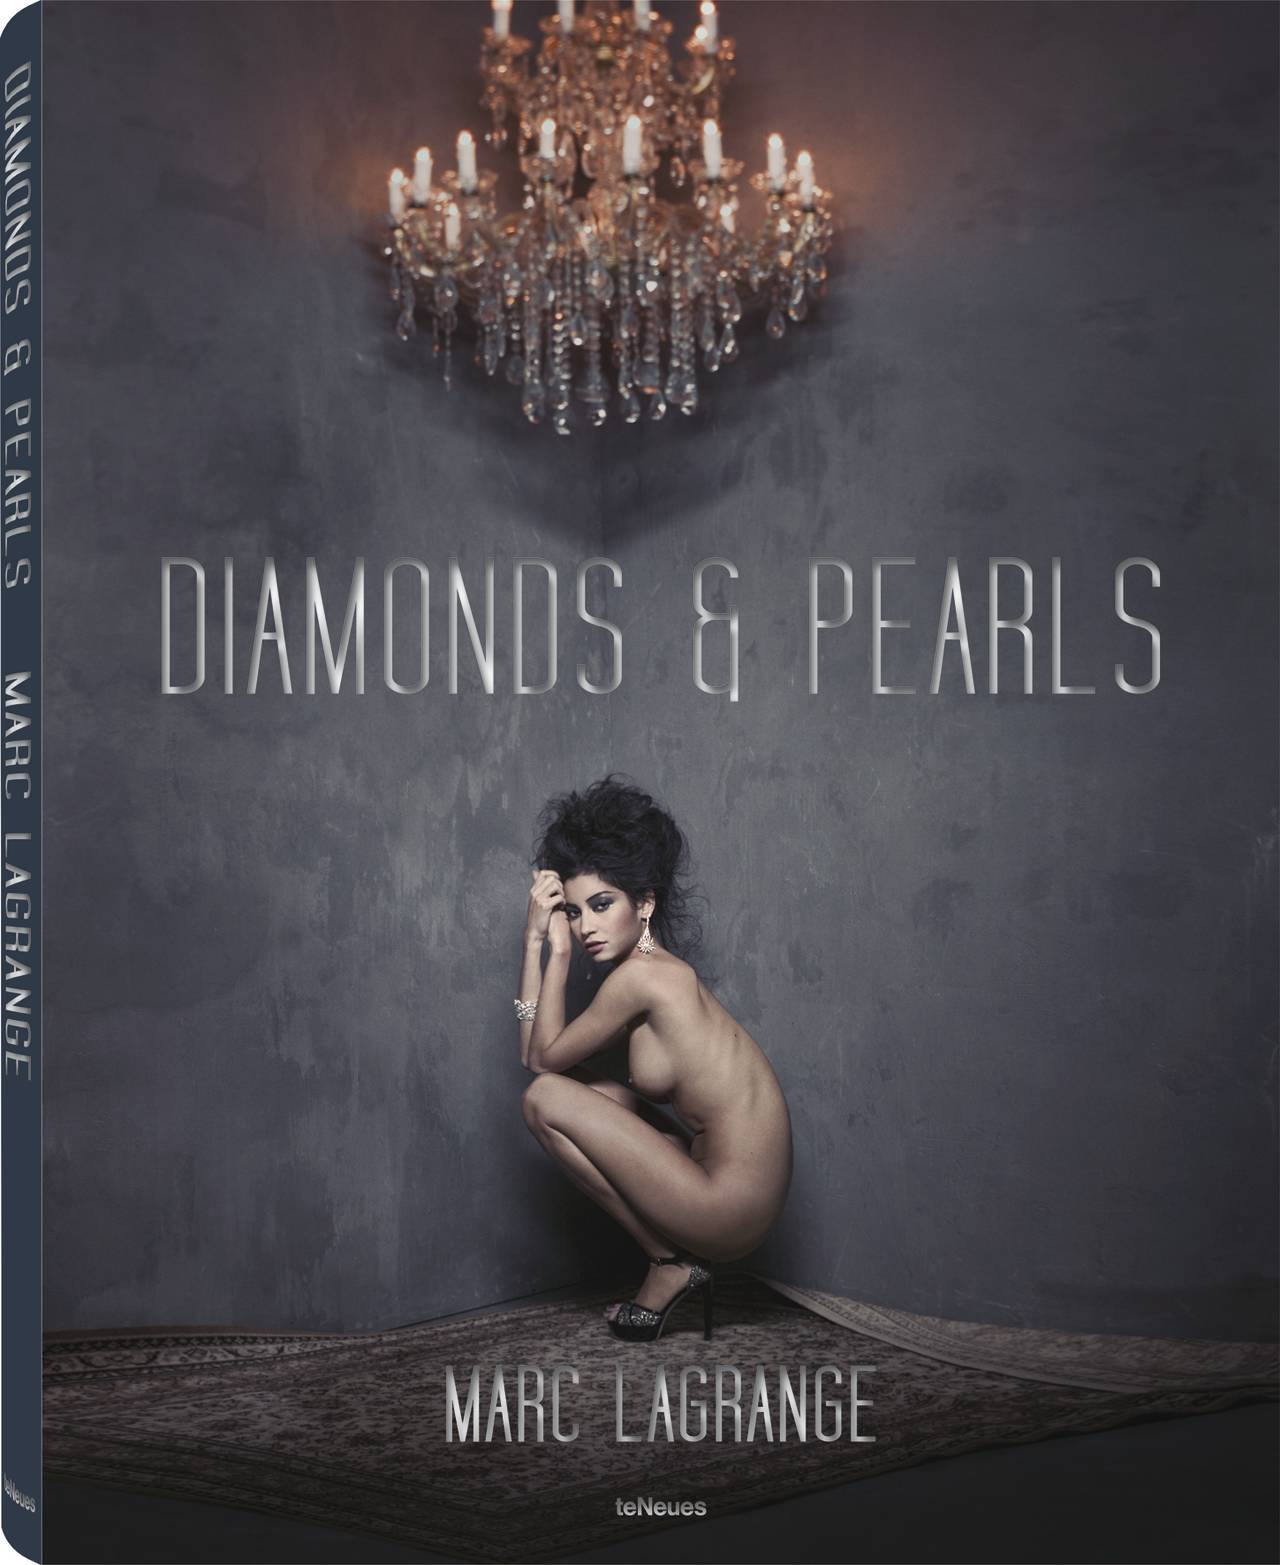 © Diamonds & Pearls by Marc Lagrange, Corner Girl, 2013, published by teNeues, www.teneues.com. Photo © 2013 Marc Lagrange. All rights reserved.